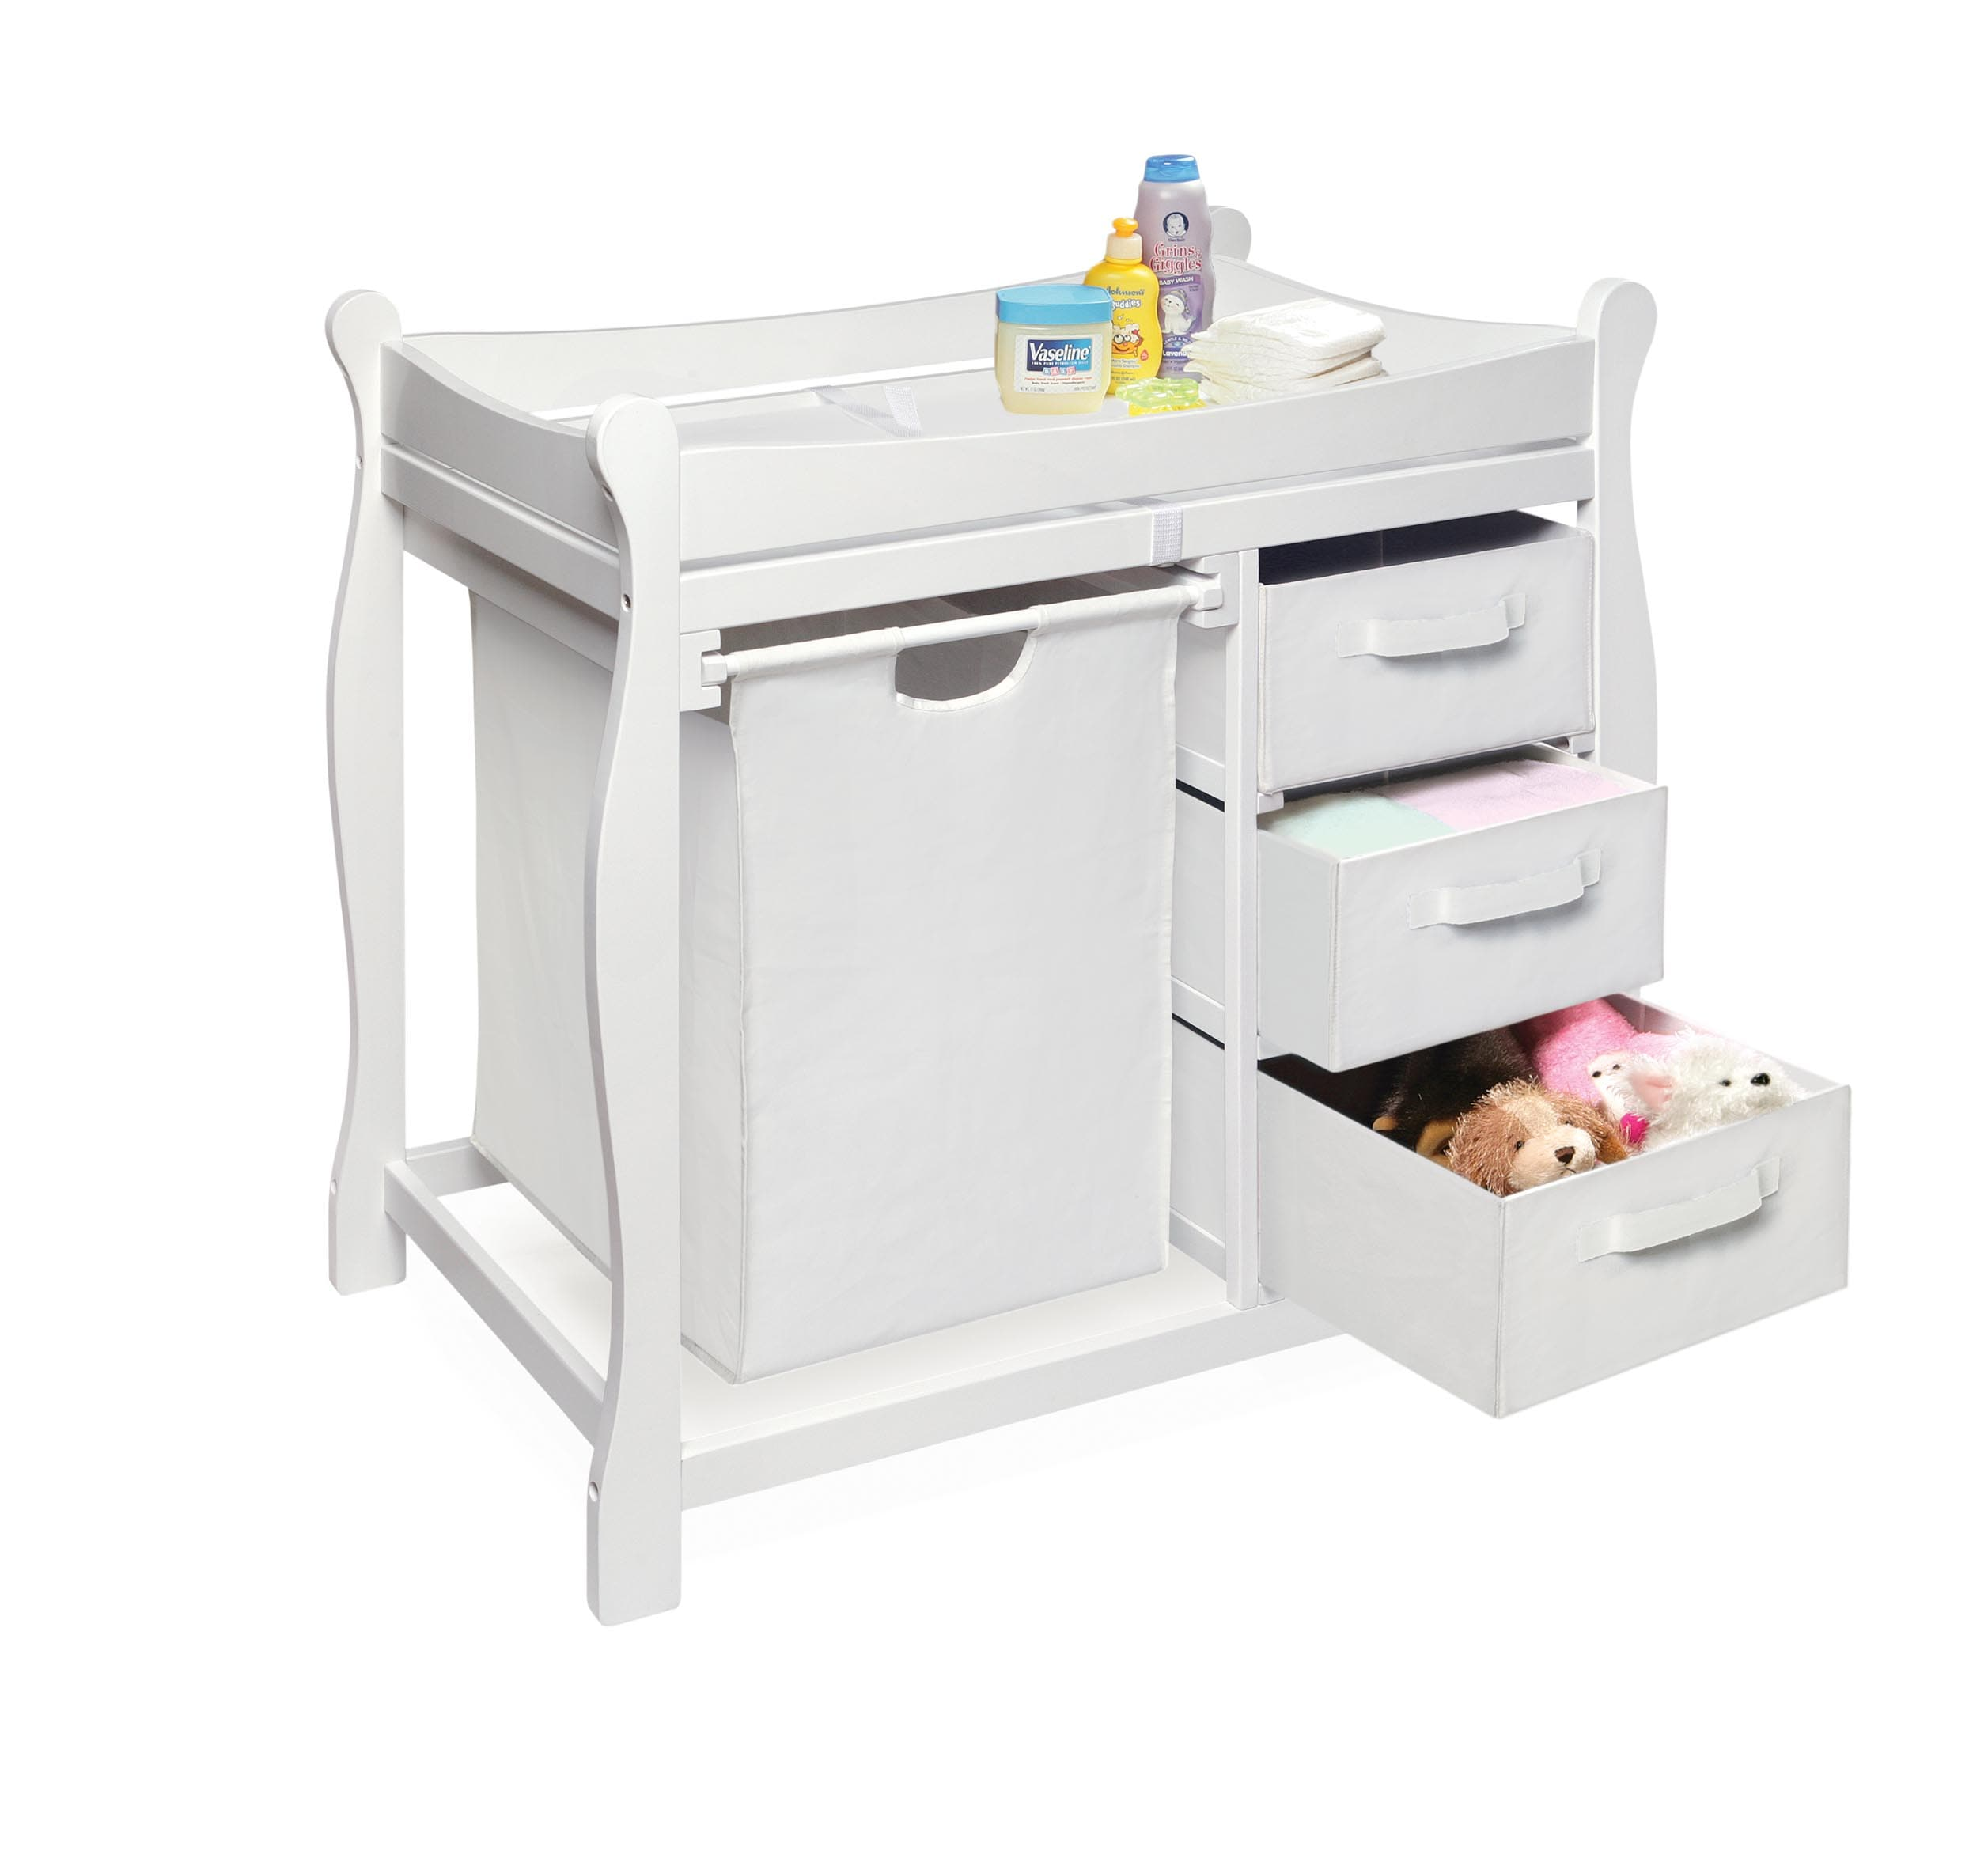 Gentil Shop White Changing Table With Hamper And Three Baskets   Free Shipping  Today   Overstock.com   3821188